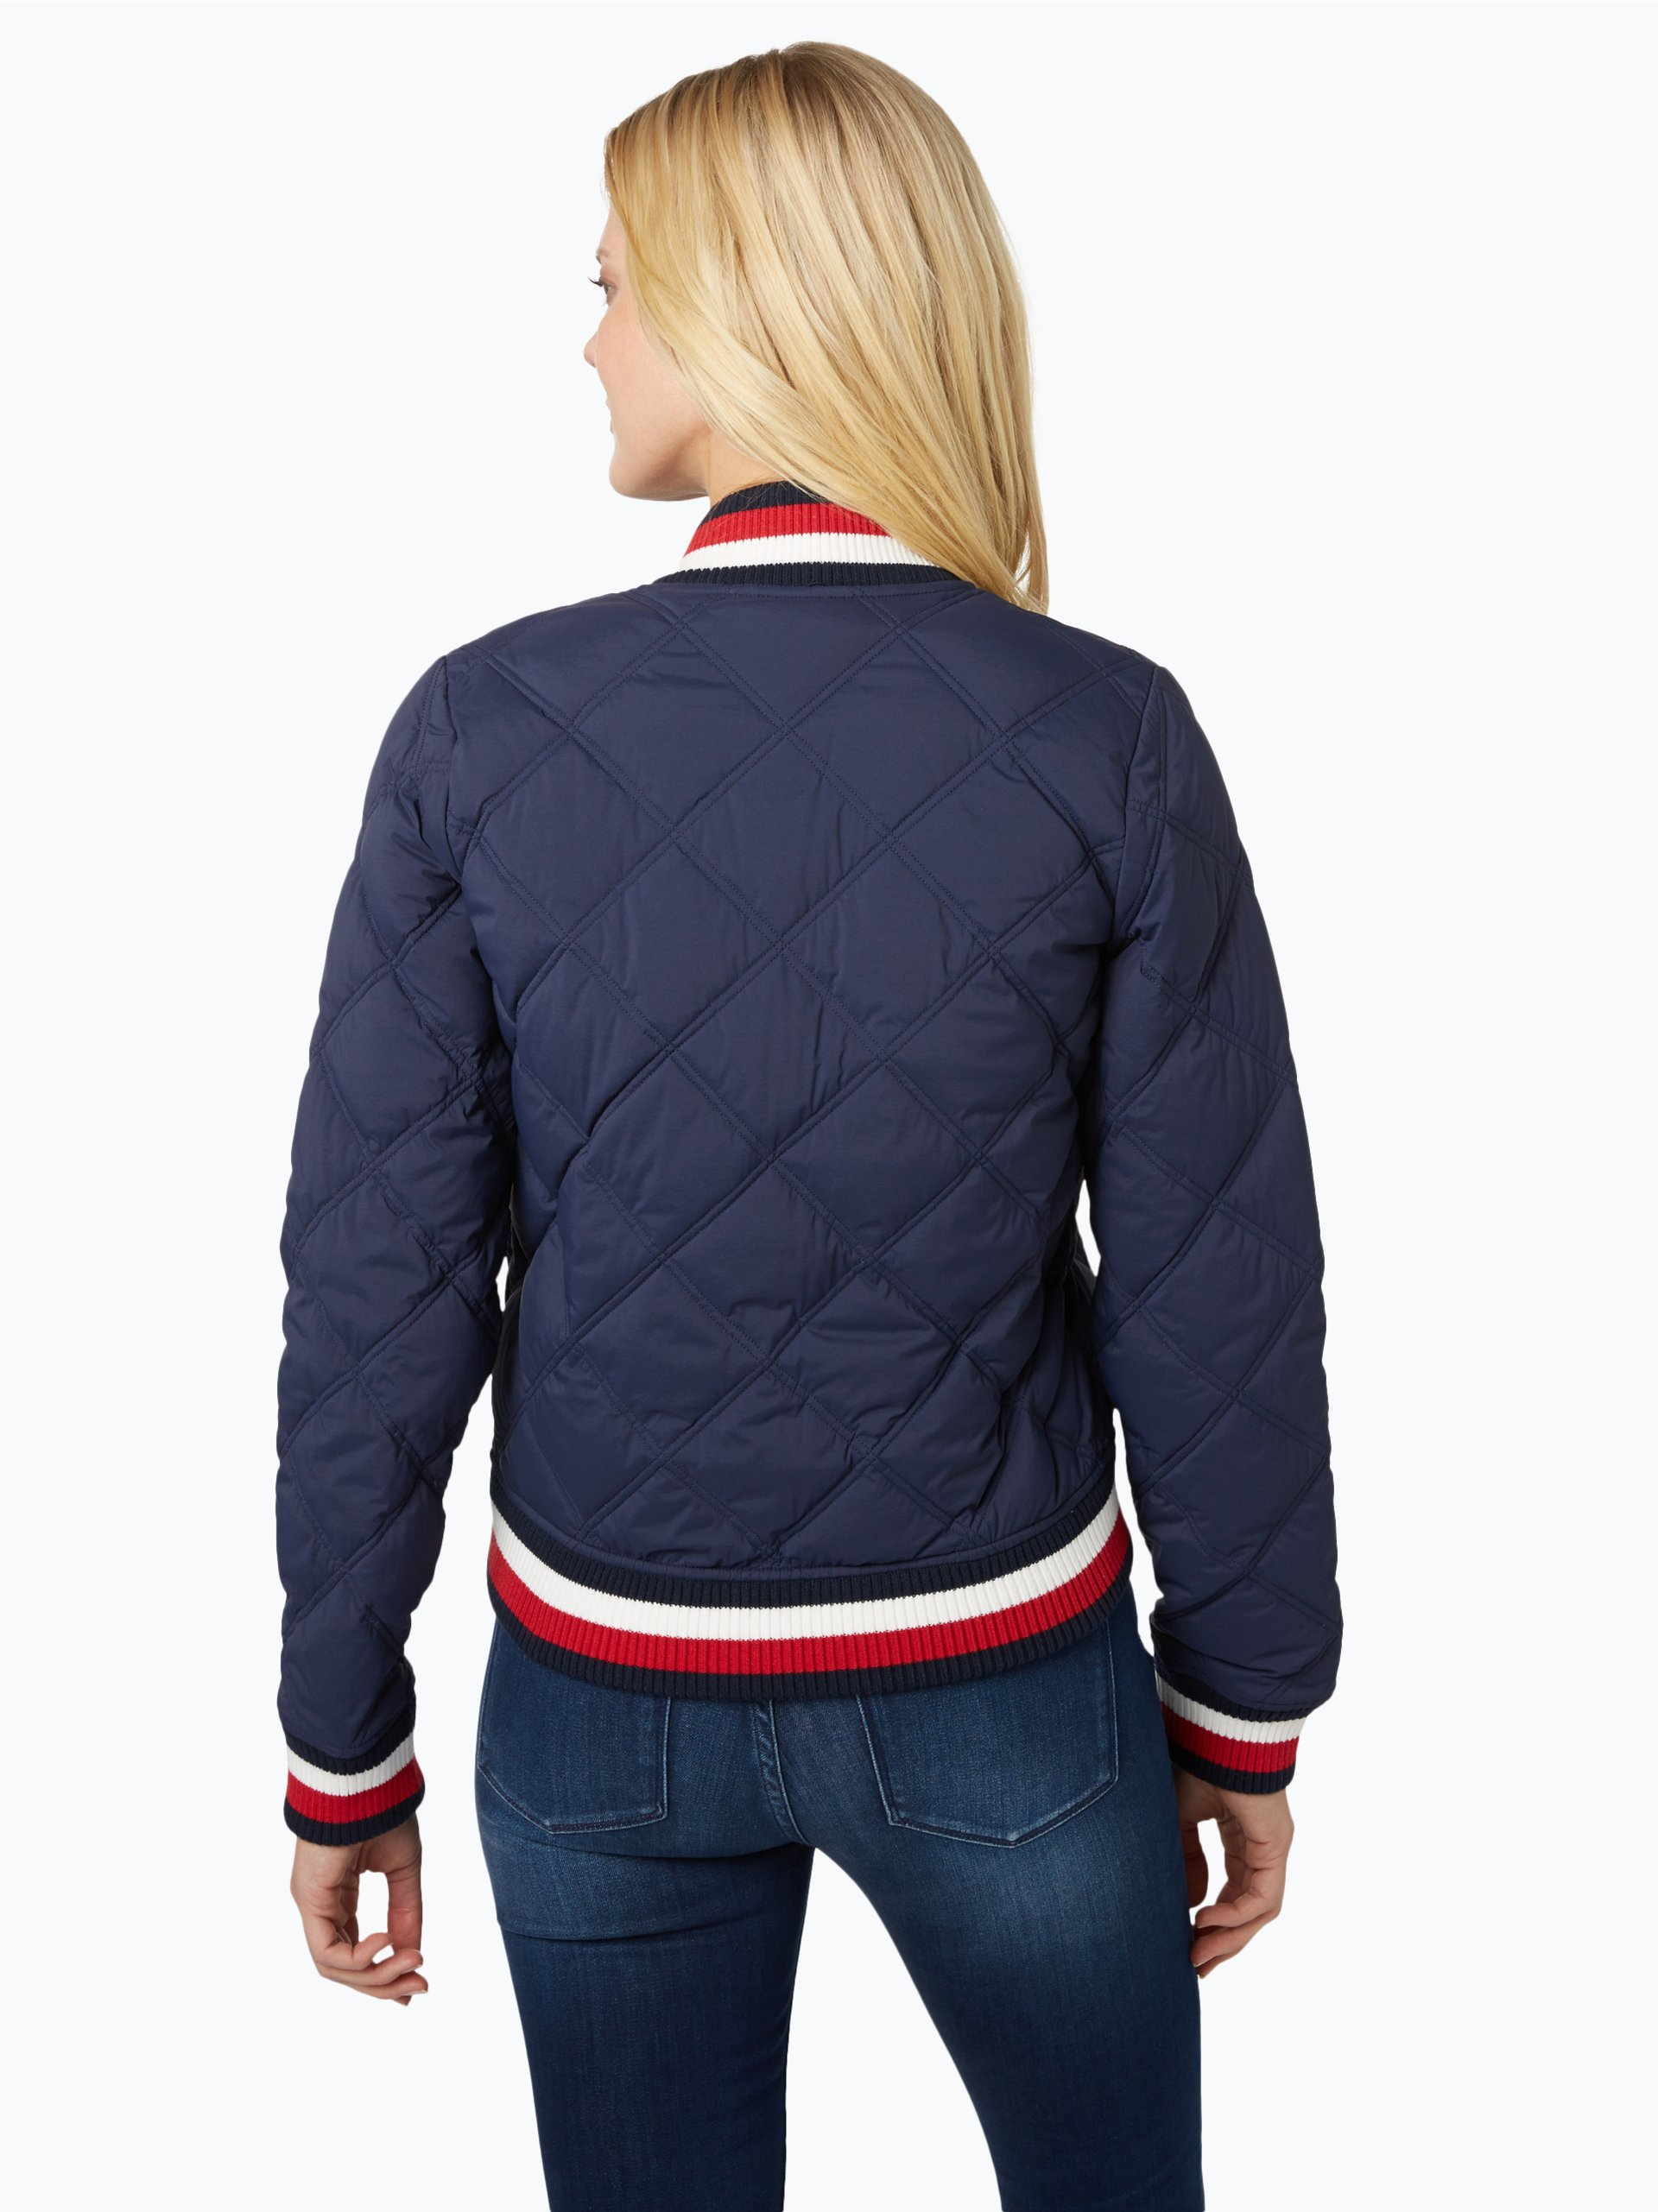 steppjacke tommy hilfiger damen tommy hilfiger steppjacke mit webpelz kapuze daunen federn. Black Bedroom Furniture Sets. Home Design Ideas